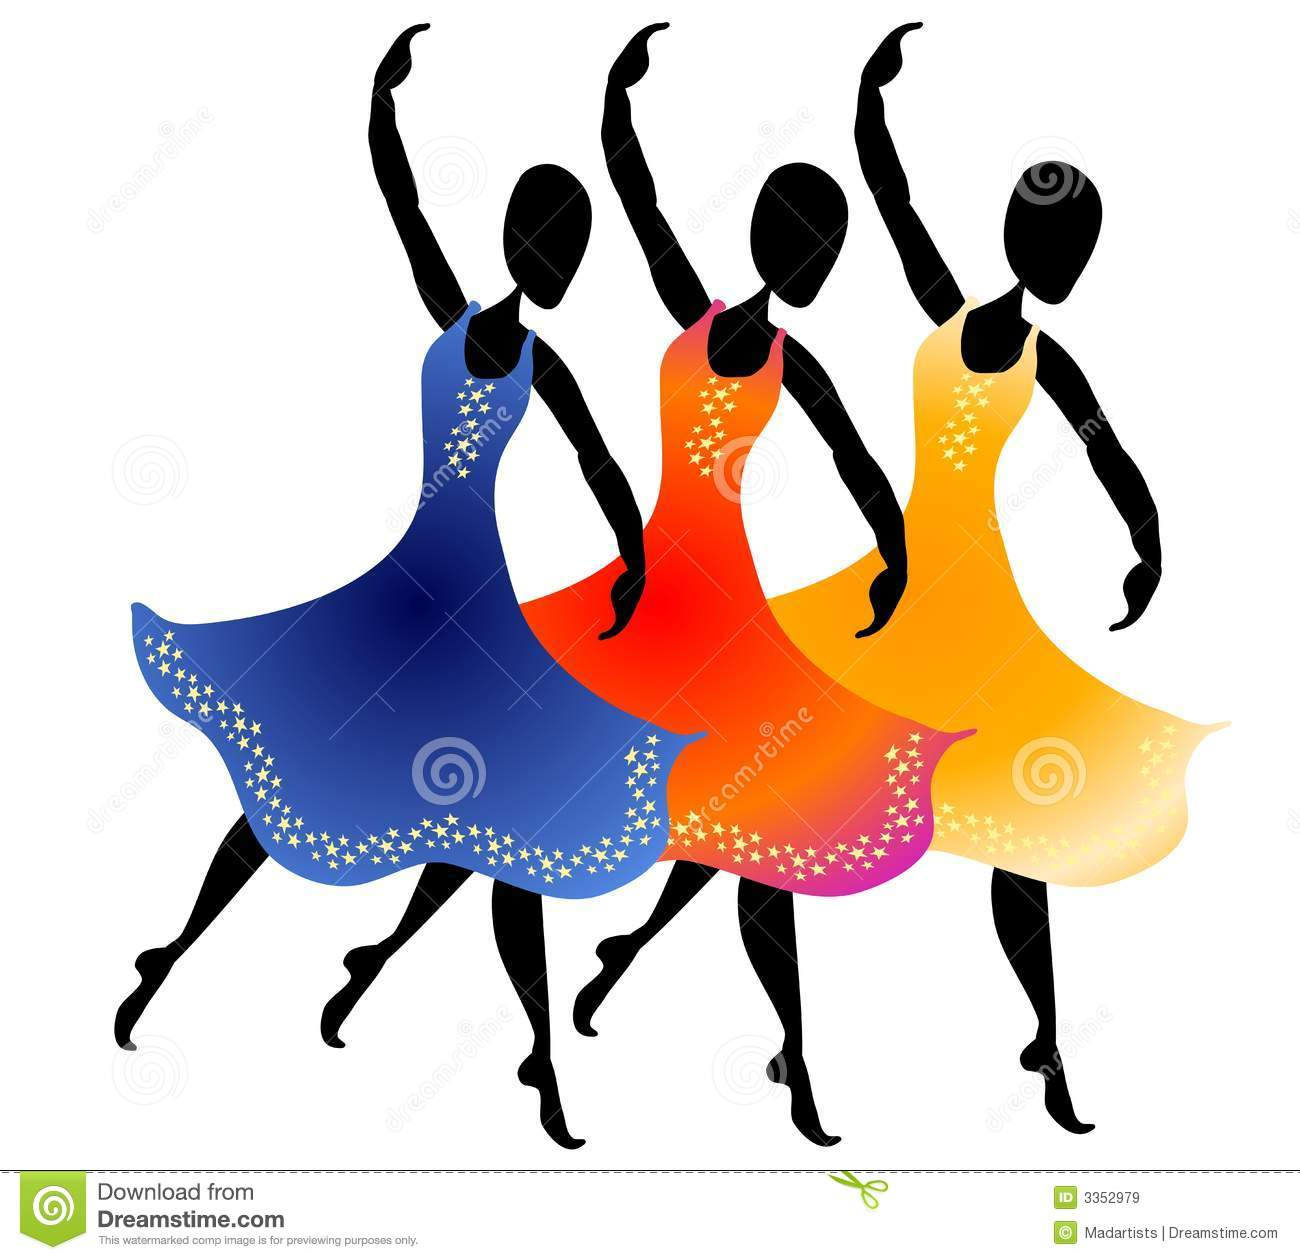 3 women dancing clip art stock illustration illustration of images rh dreamstime com free dance clipart silhouettes free dance clipart silhouettes